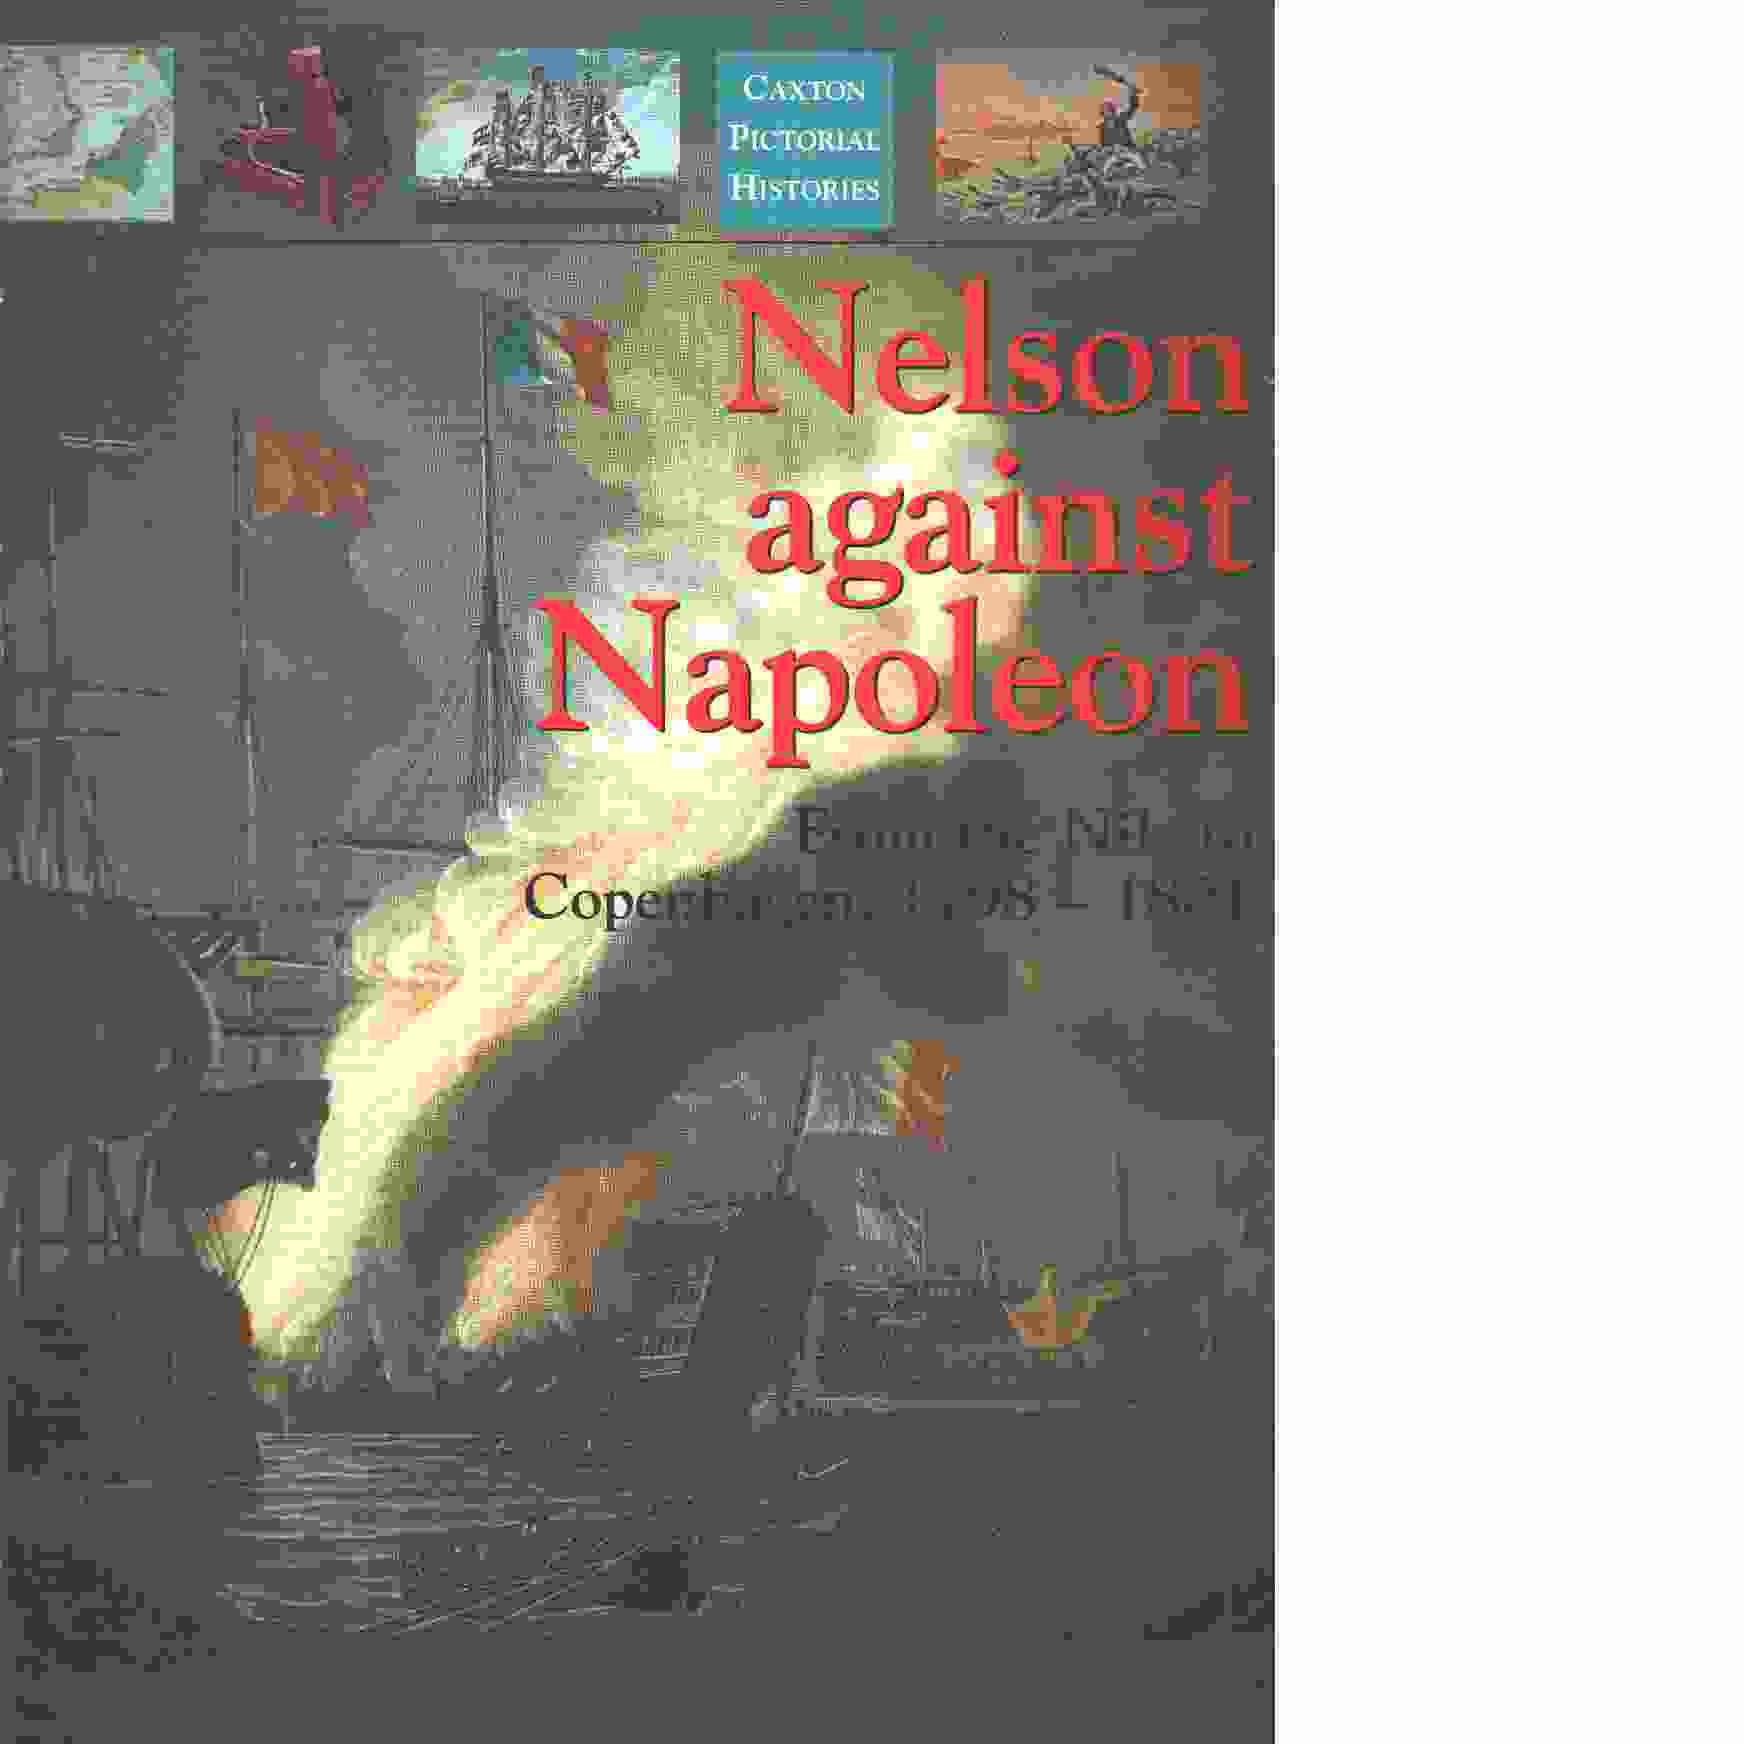 Nelson against Napoleon : From the Nile to Copenhagen 1798-1801 - Gardiner, Robert